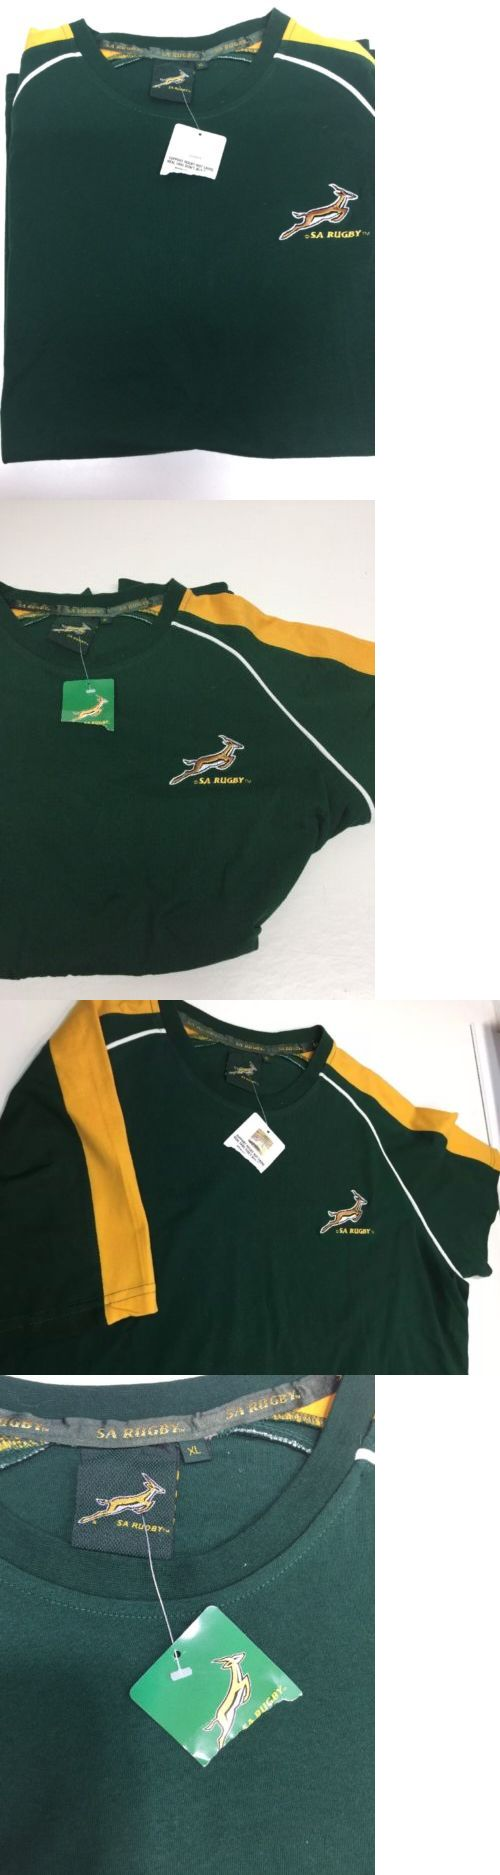 Rugby 21563: South Africa Rugby Team Tee Shirt Green Xl New Nwt -> BUY IT NOW ONLY: $45 on eBay!